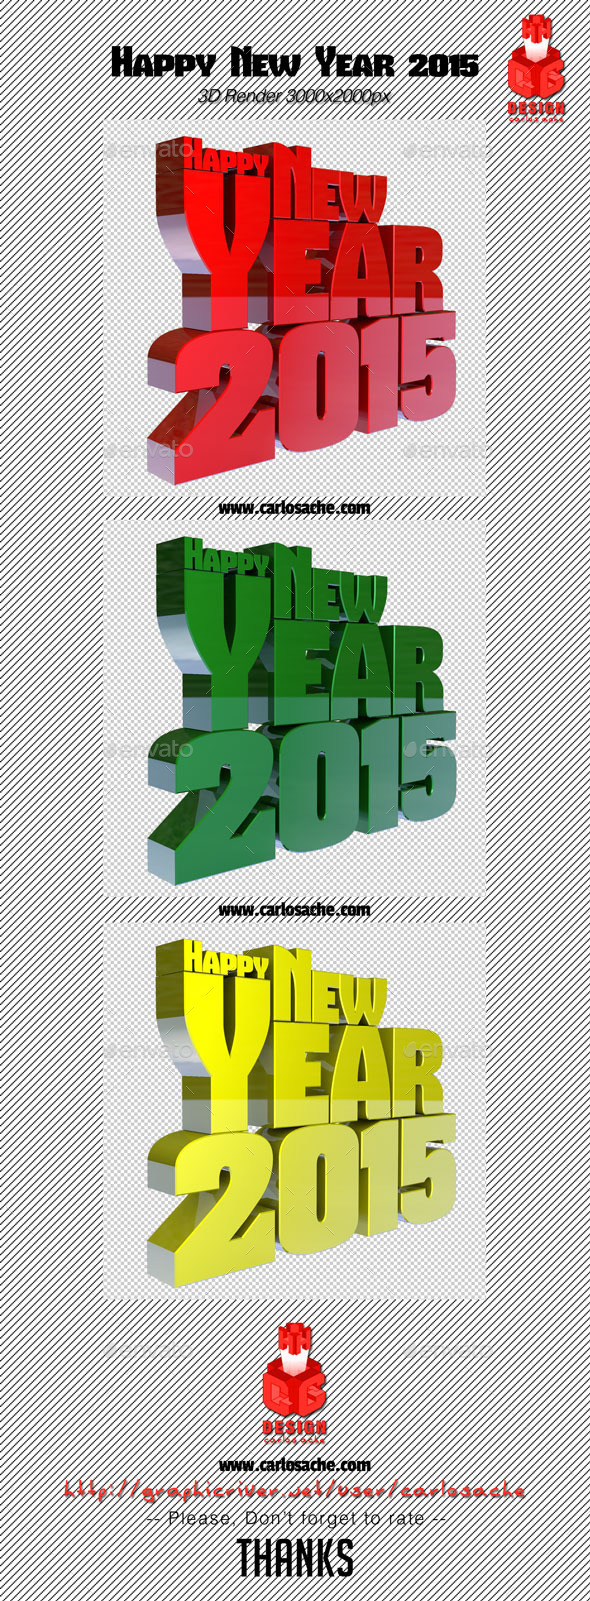 GraphicRiver Happy New Year 2015 3D Render Text 9205886